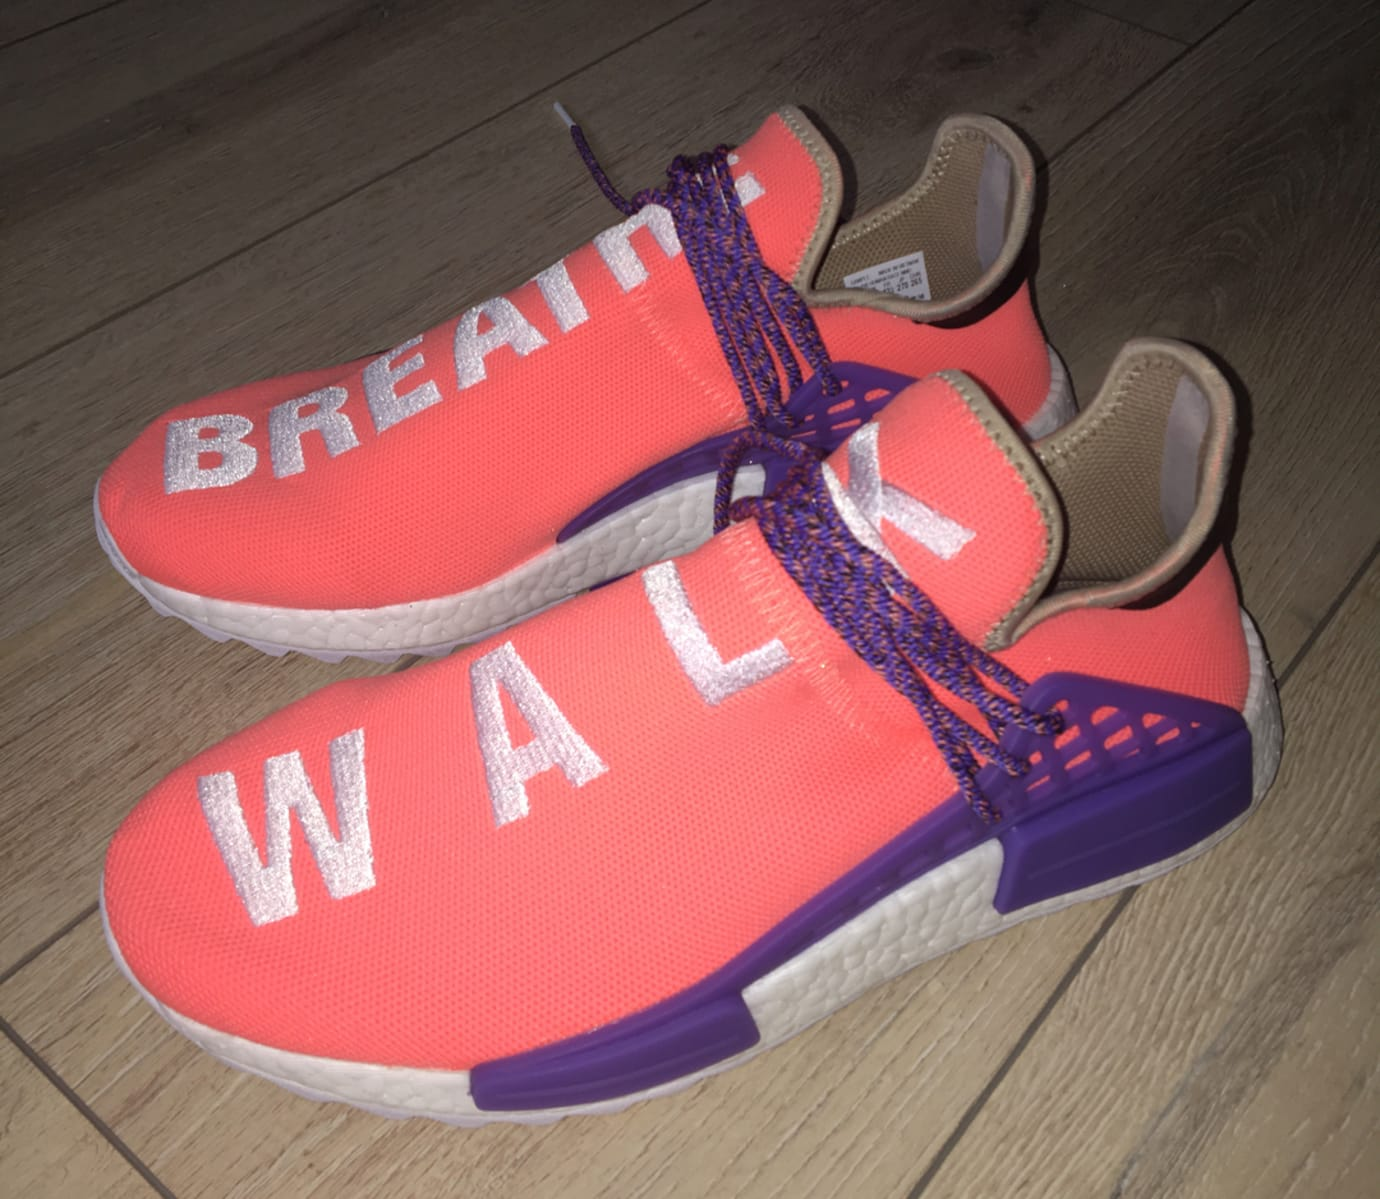 f66a55e3d Pharrell x Adidas NMD Hu Breathe Walk Orange Purple Sample Dark